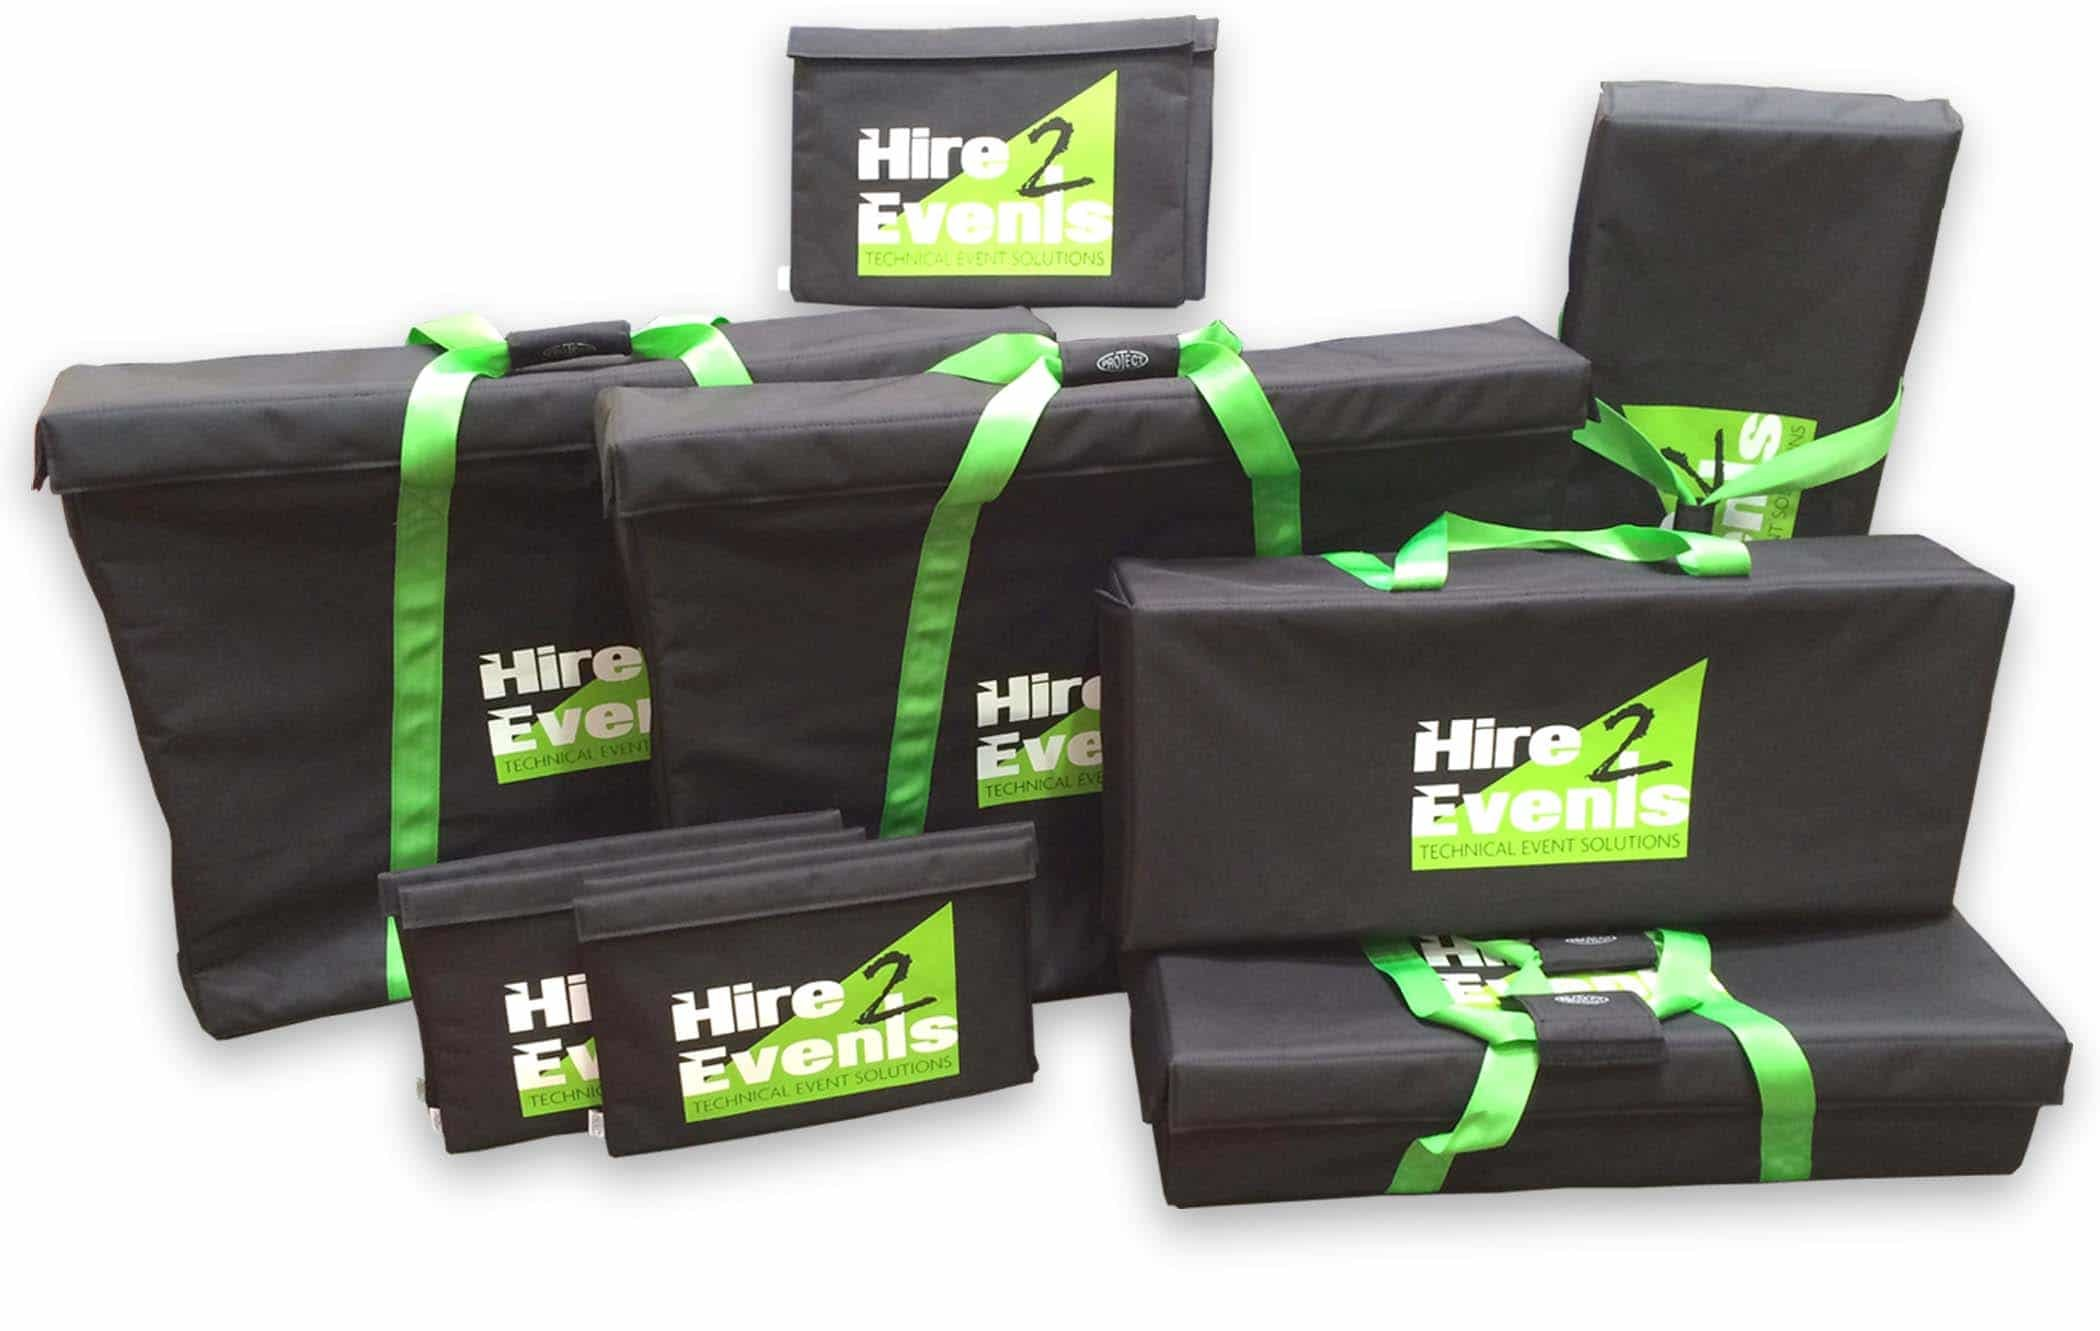 Padded bags for audio visual equipment